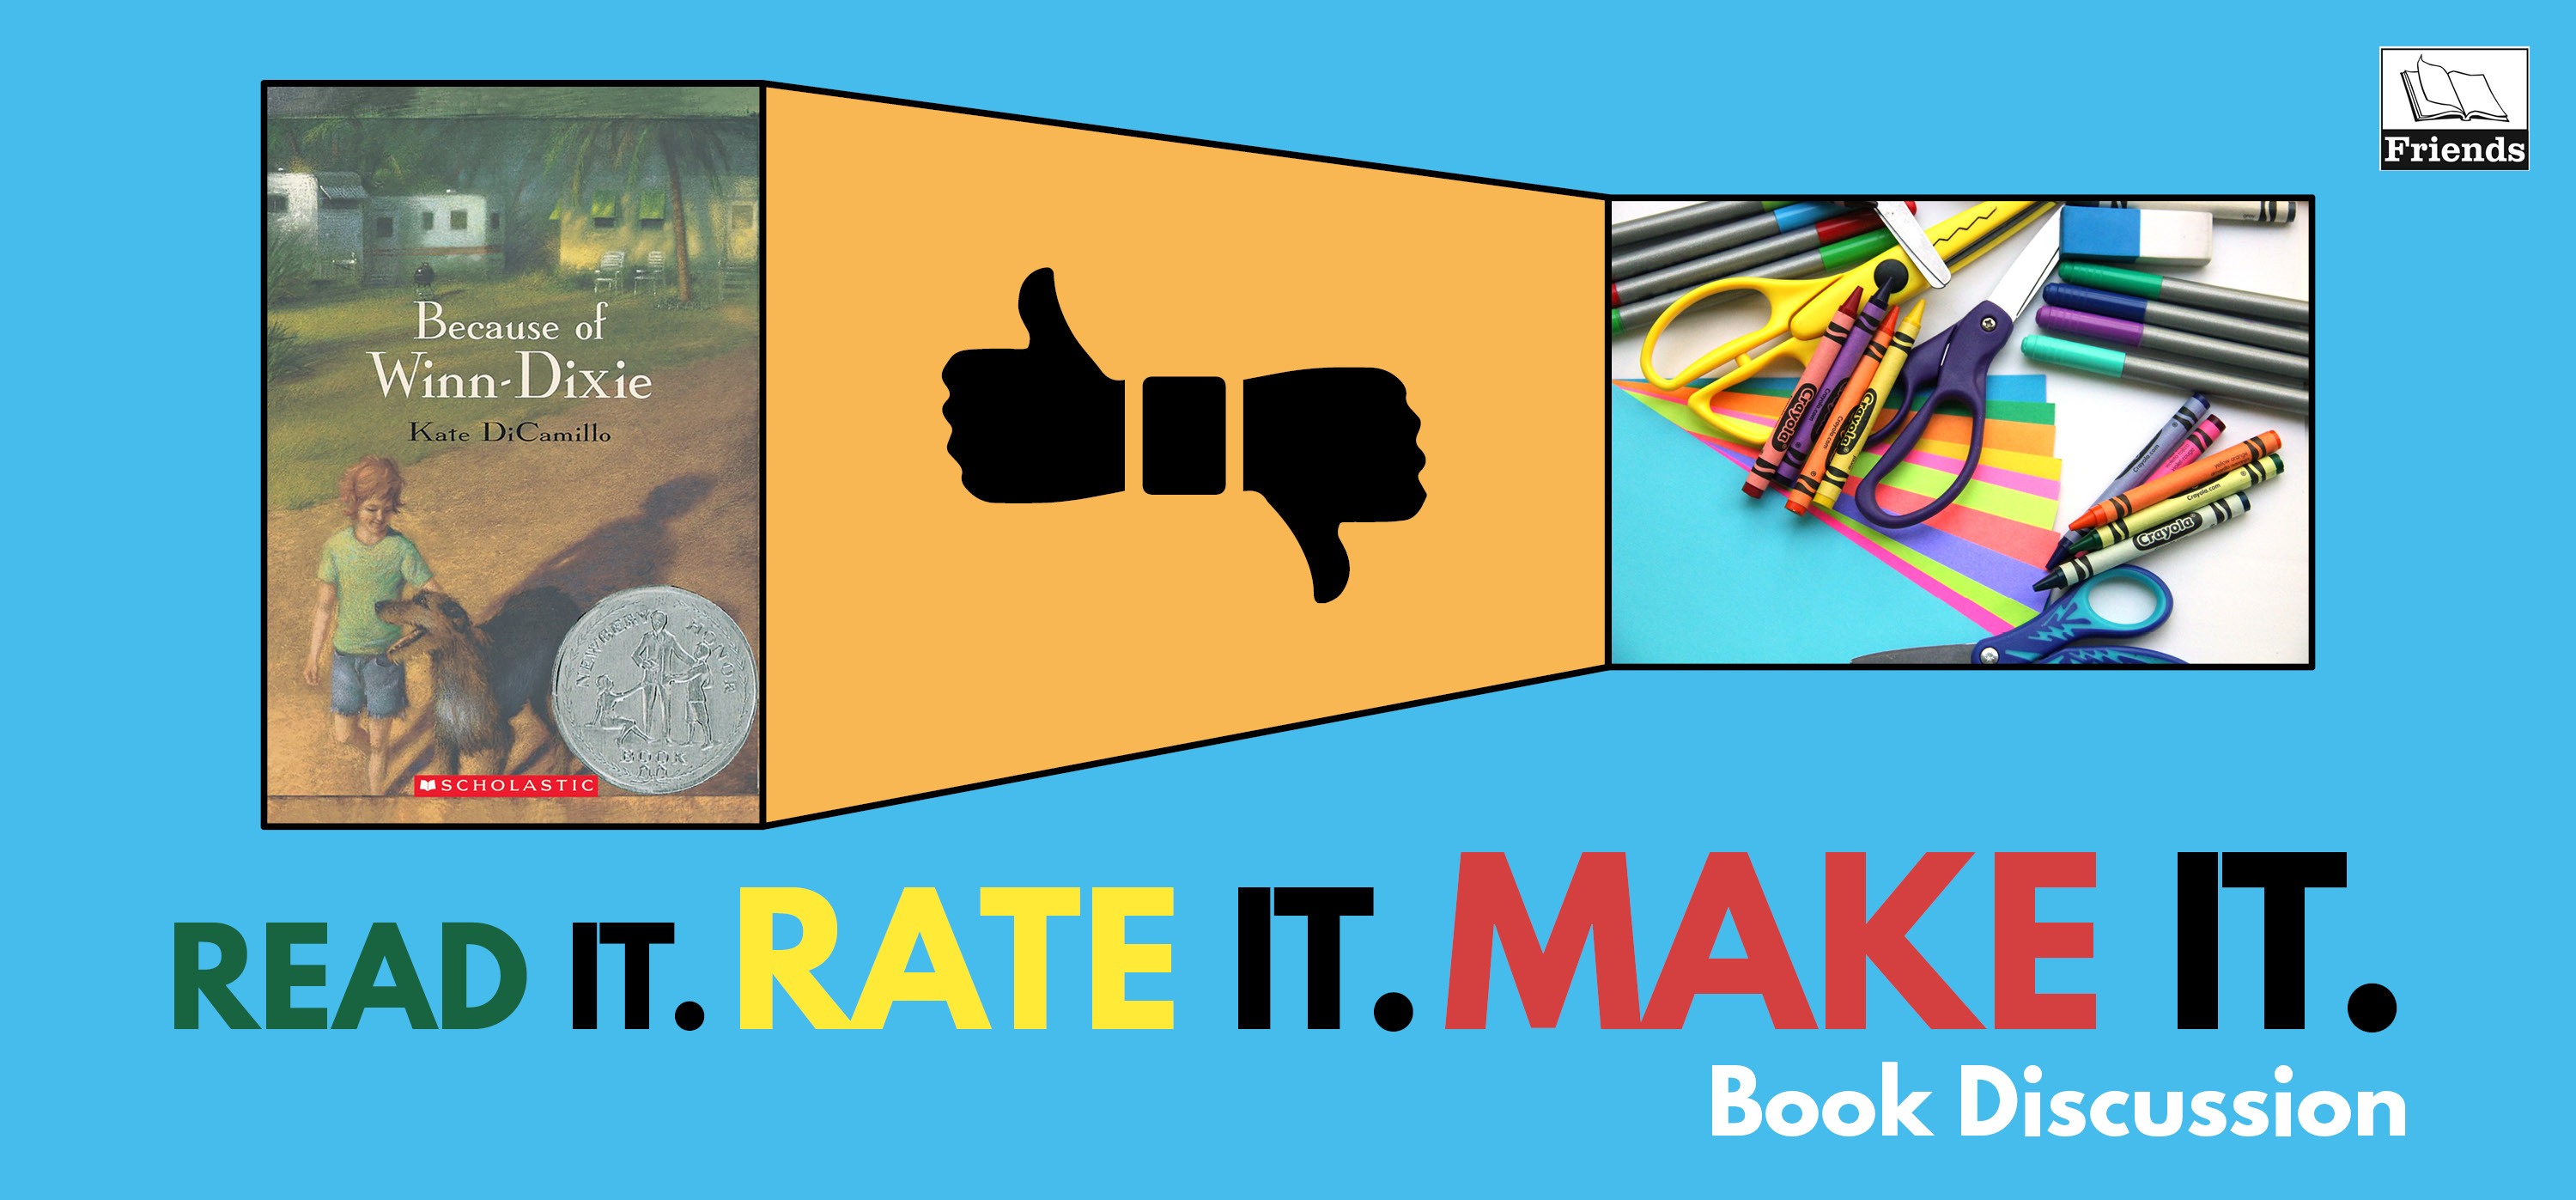 Read It! Rate It! Make It! Book Discussion